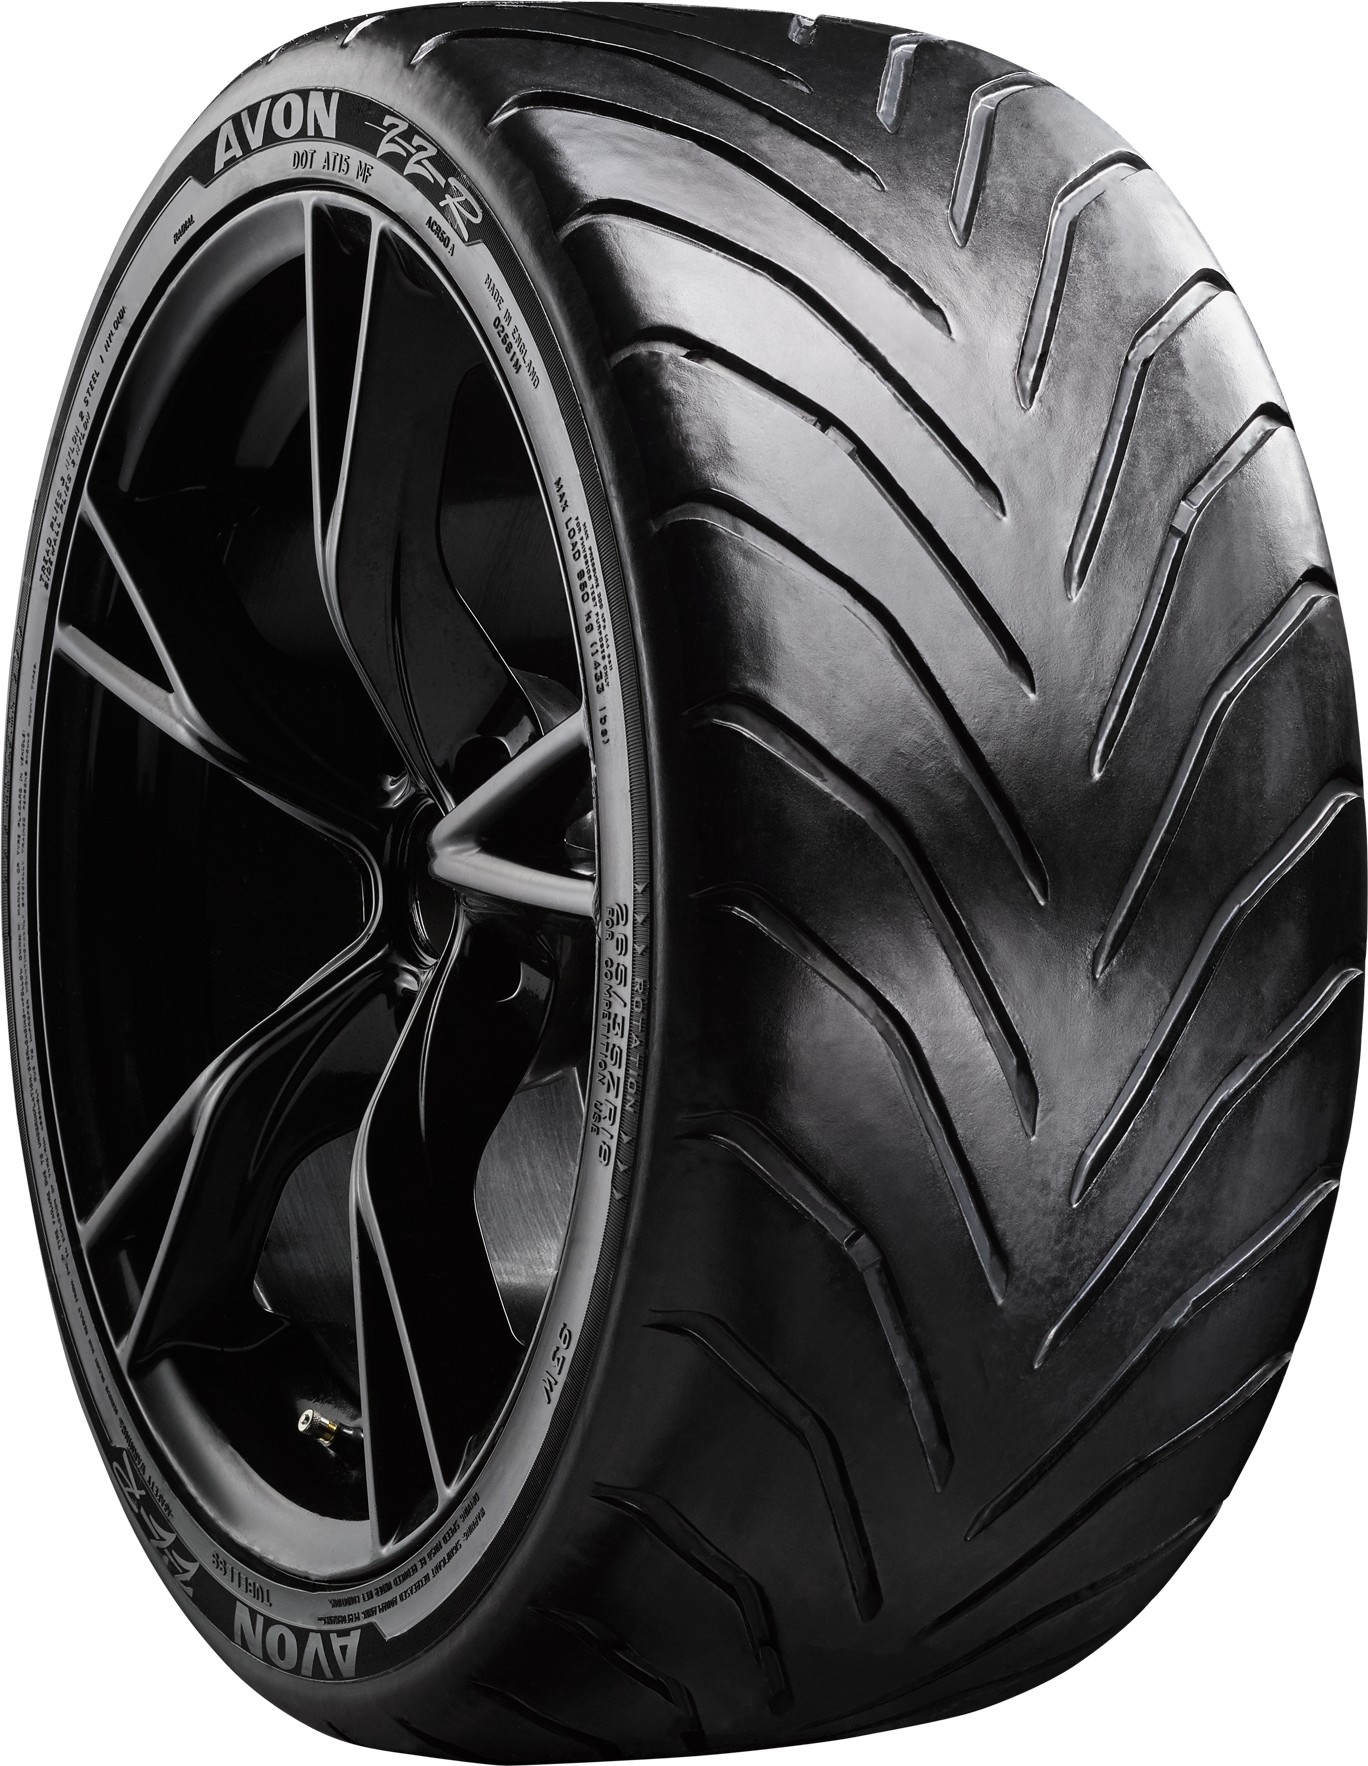 Tyre Tread Patterns – Directional